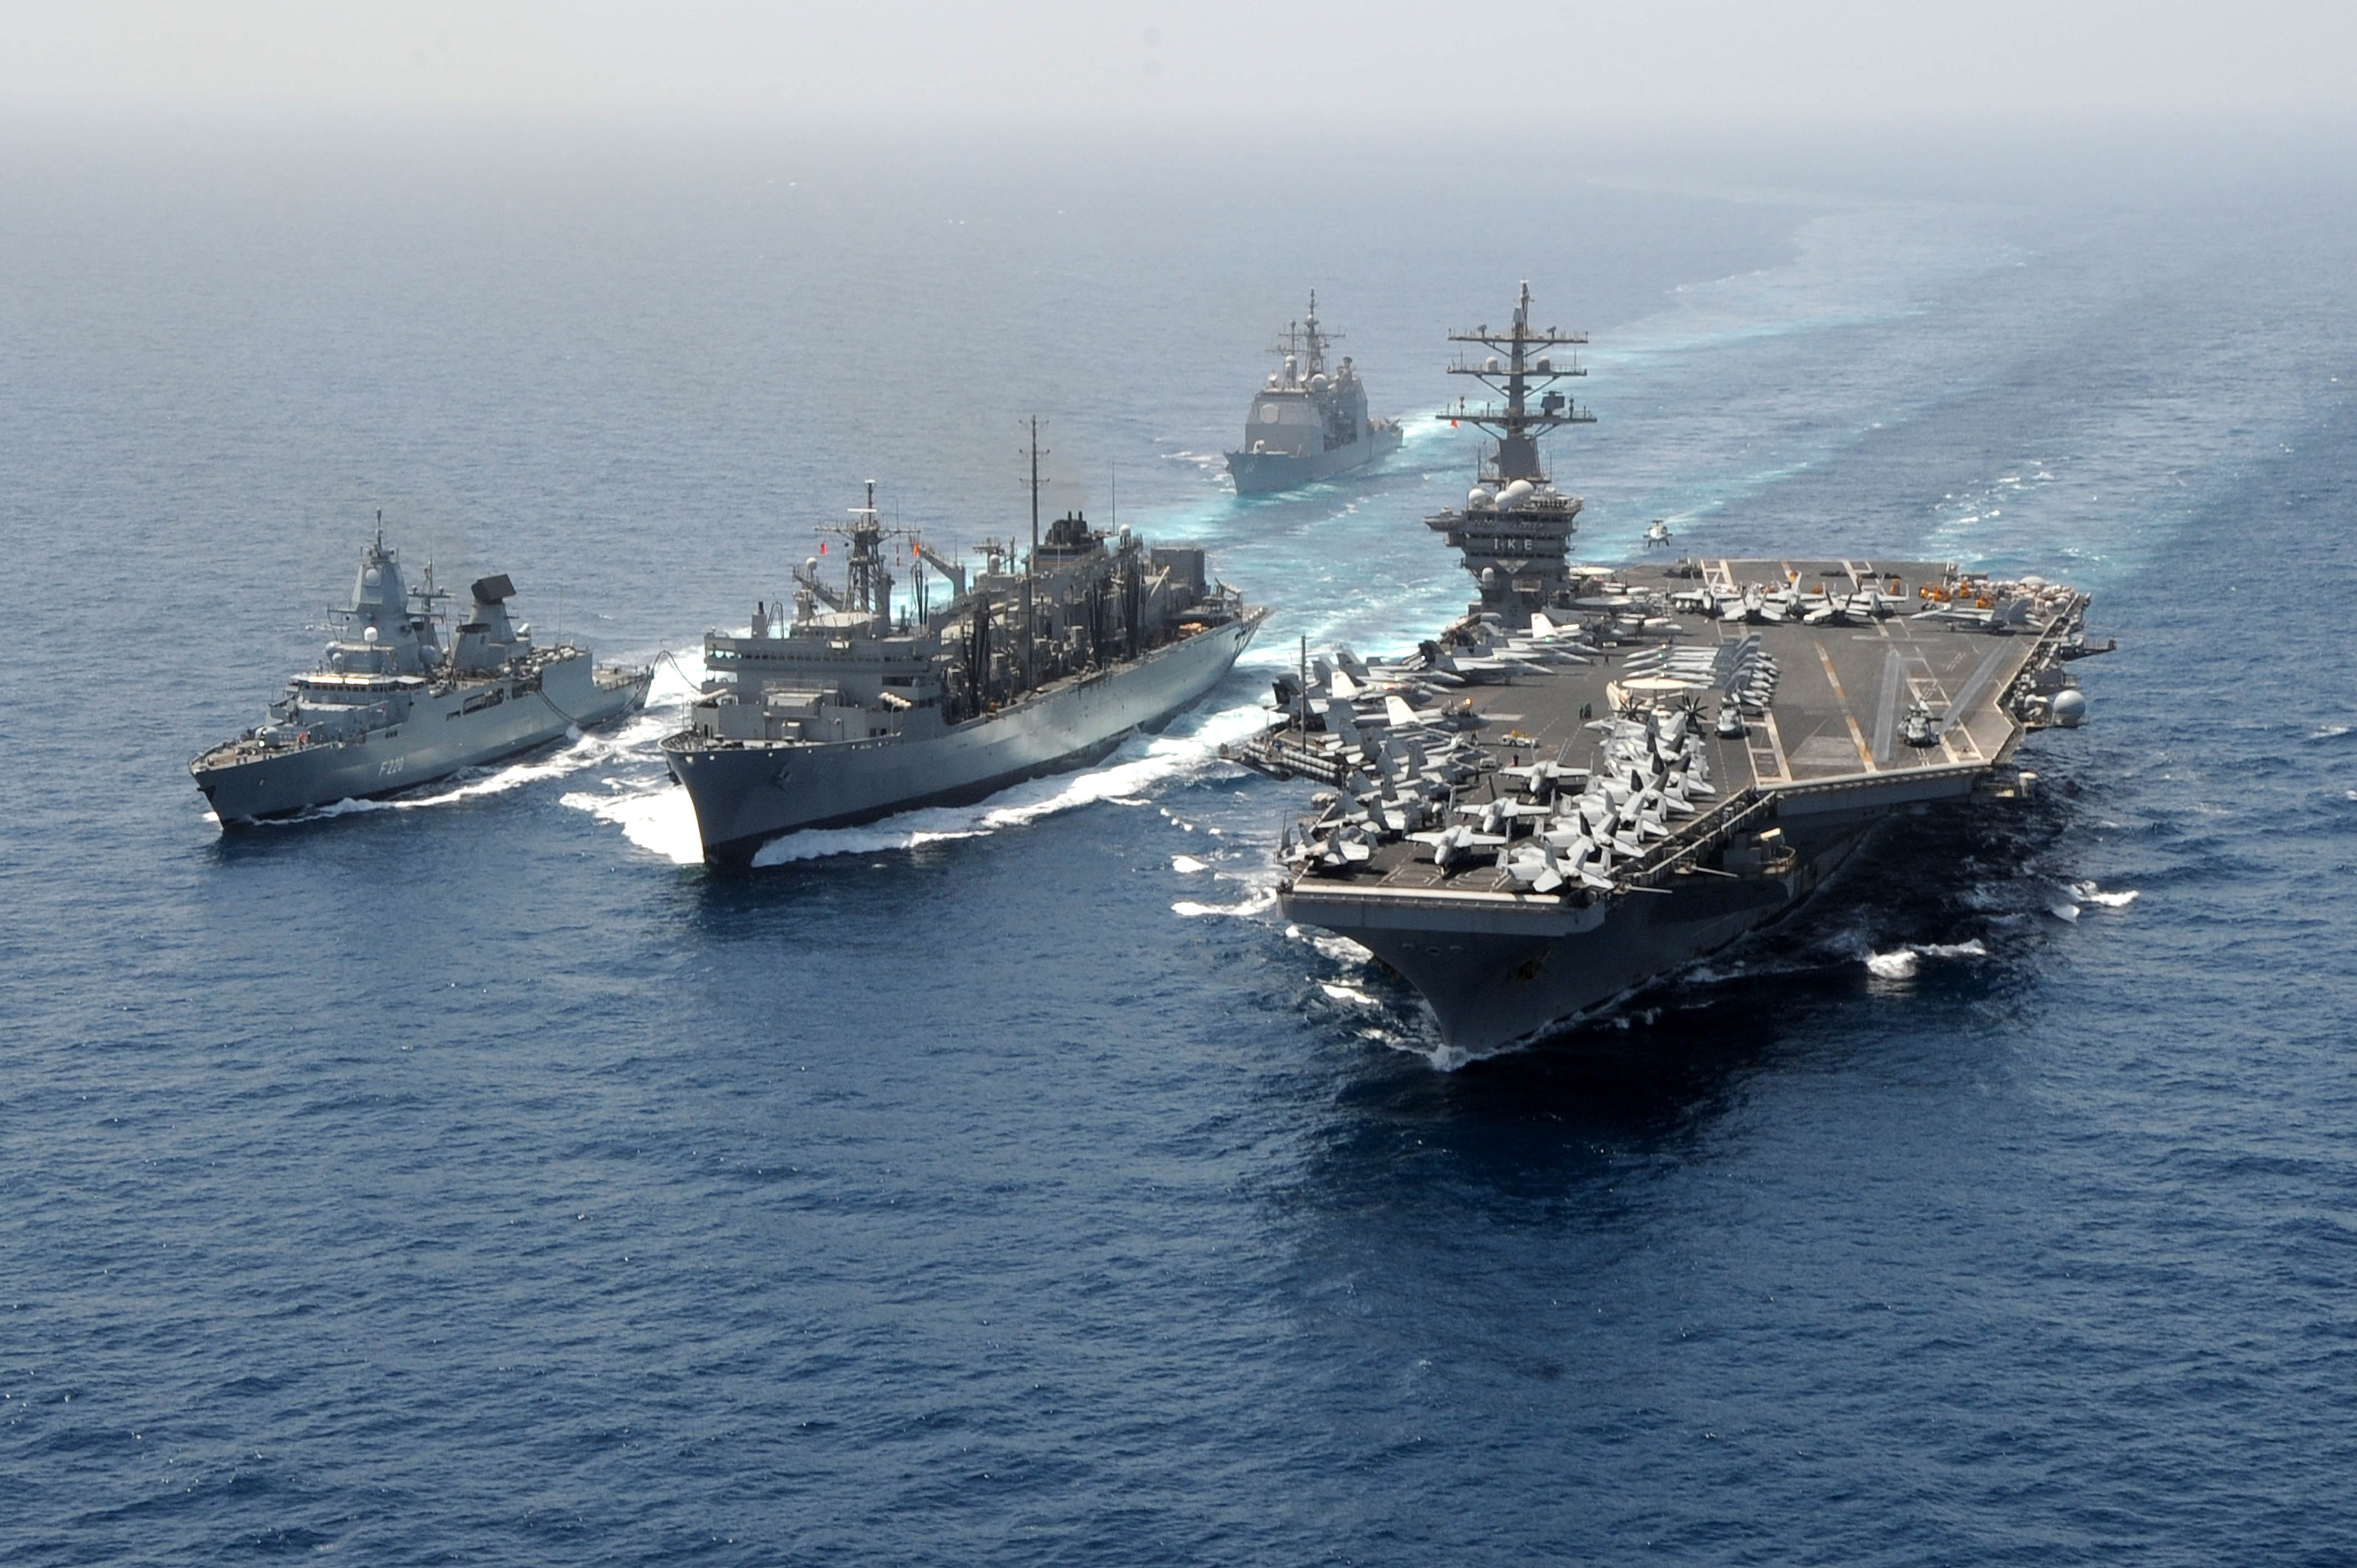 The German Navy frigate FGS Hamburg (F220), left, and the aircraft carrier USS Dwight D. Eisenhower (CVN 69), right, take on fuel and stores from the Military Sealift Command fast combat support ship USNS Bridge (T-AOE 10), center, during a replenishment-at-sea in the Arabian Sea on March 23, 2013. (U.S. Navy photo by Mass Communication Specialist 2nd Class Ryan D. McLearnon/Released)